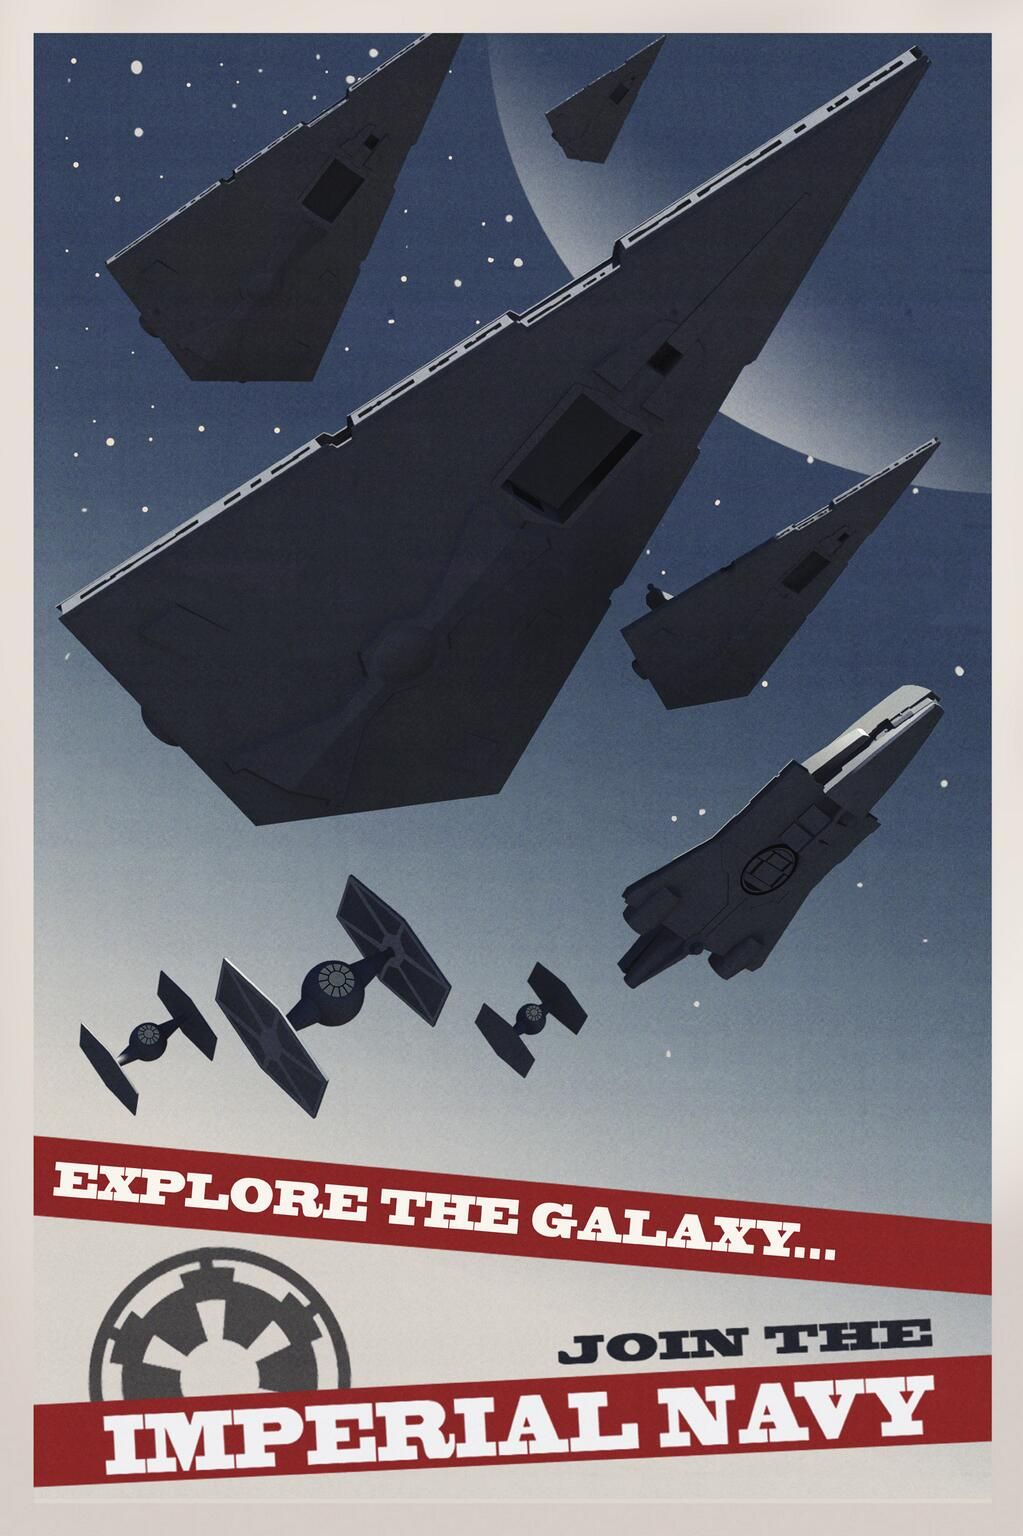 New Star Wars Rebels Propaganda Posters And News Of A Rebels Movie Updated Coffee With Kenobi